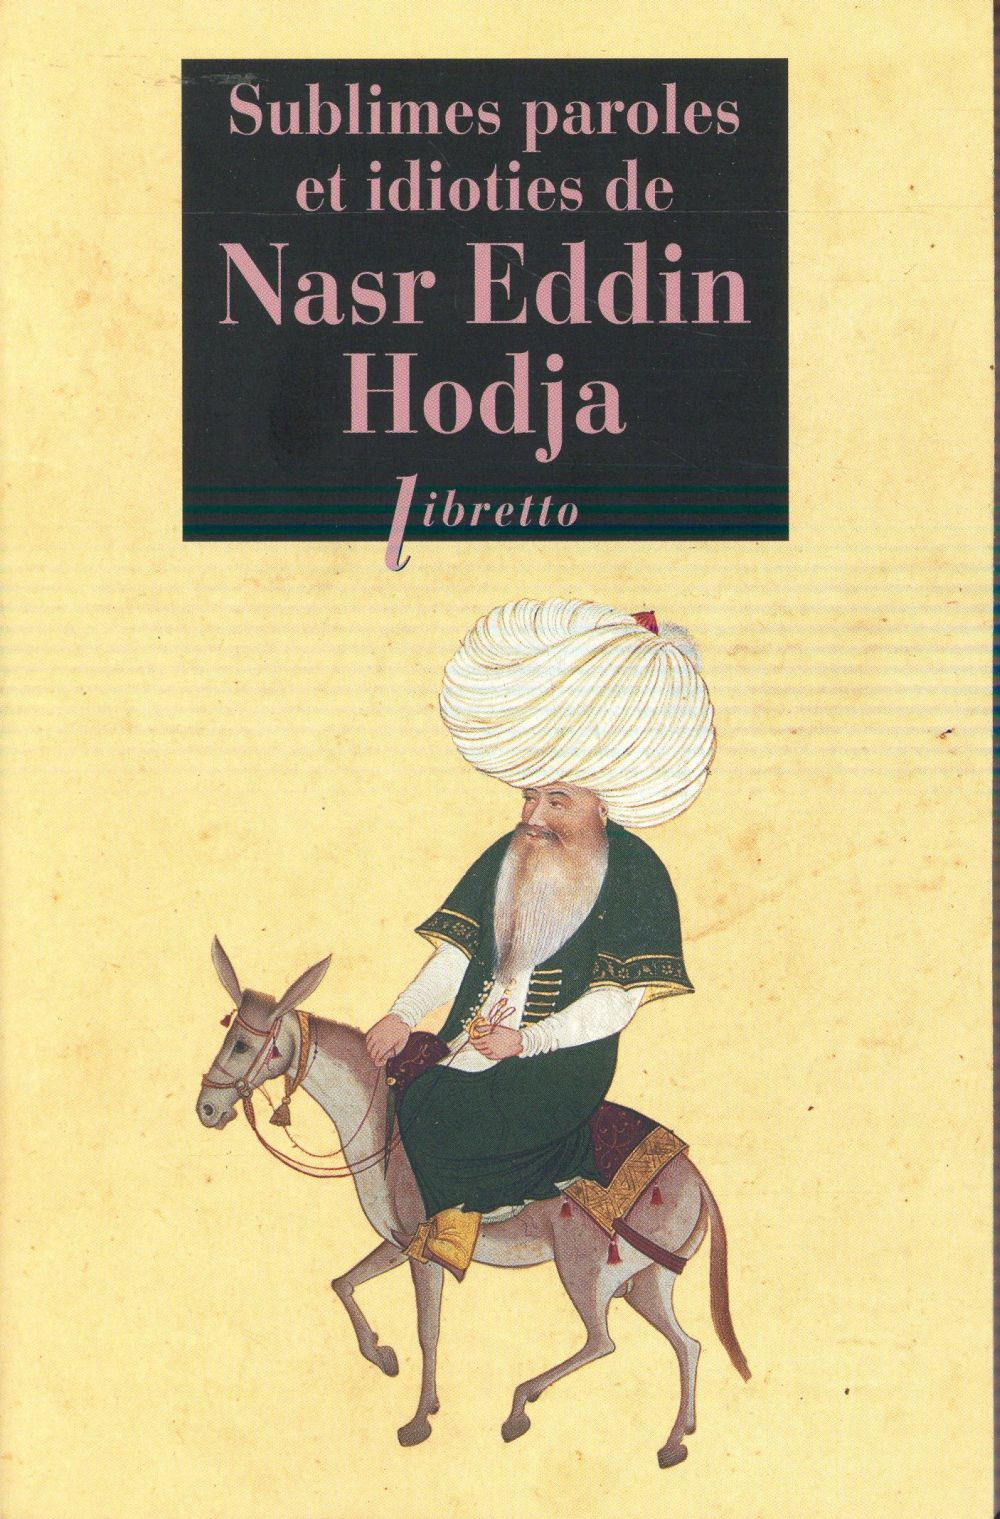 SUBLIMES PAROLES ET IDIOTIES DE NASR EDDIN HODJA  -  TOUT NASR EDDIN, OU PRESQUE